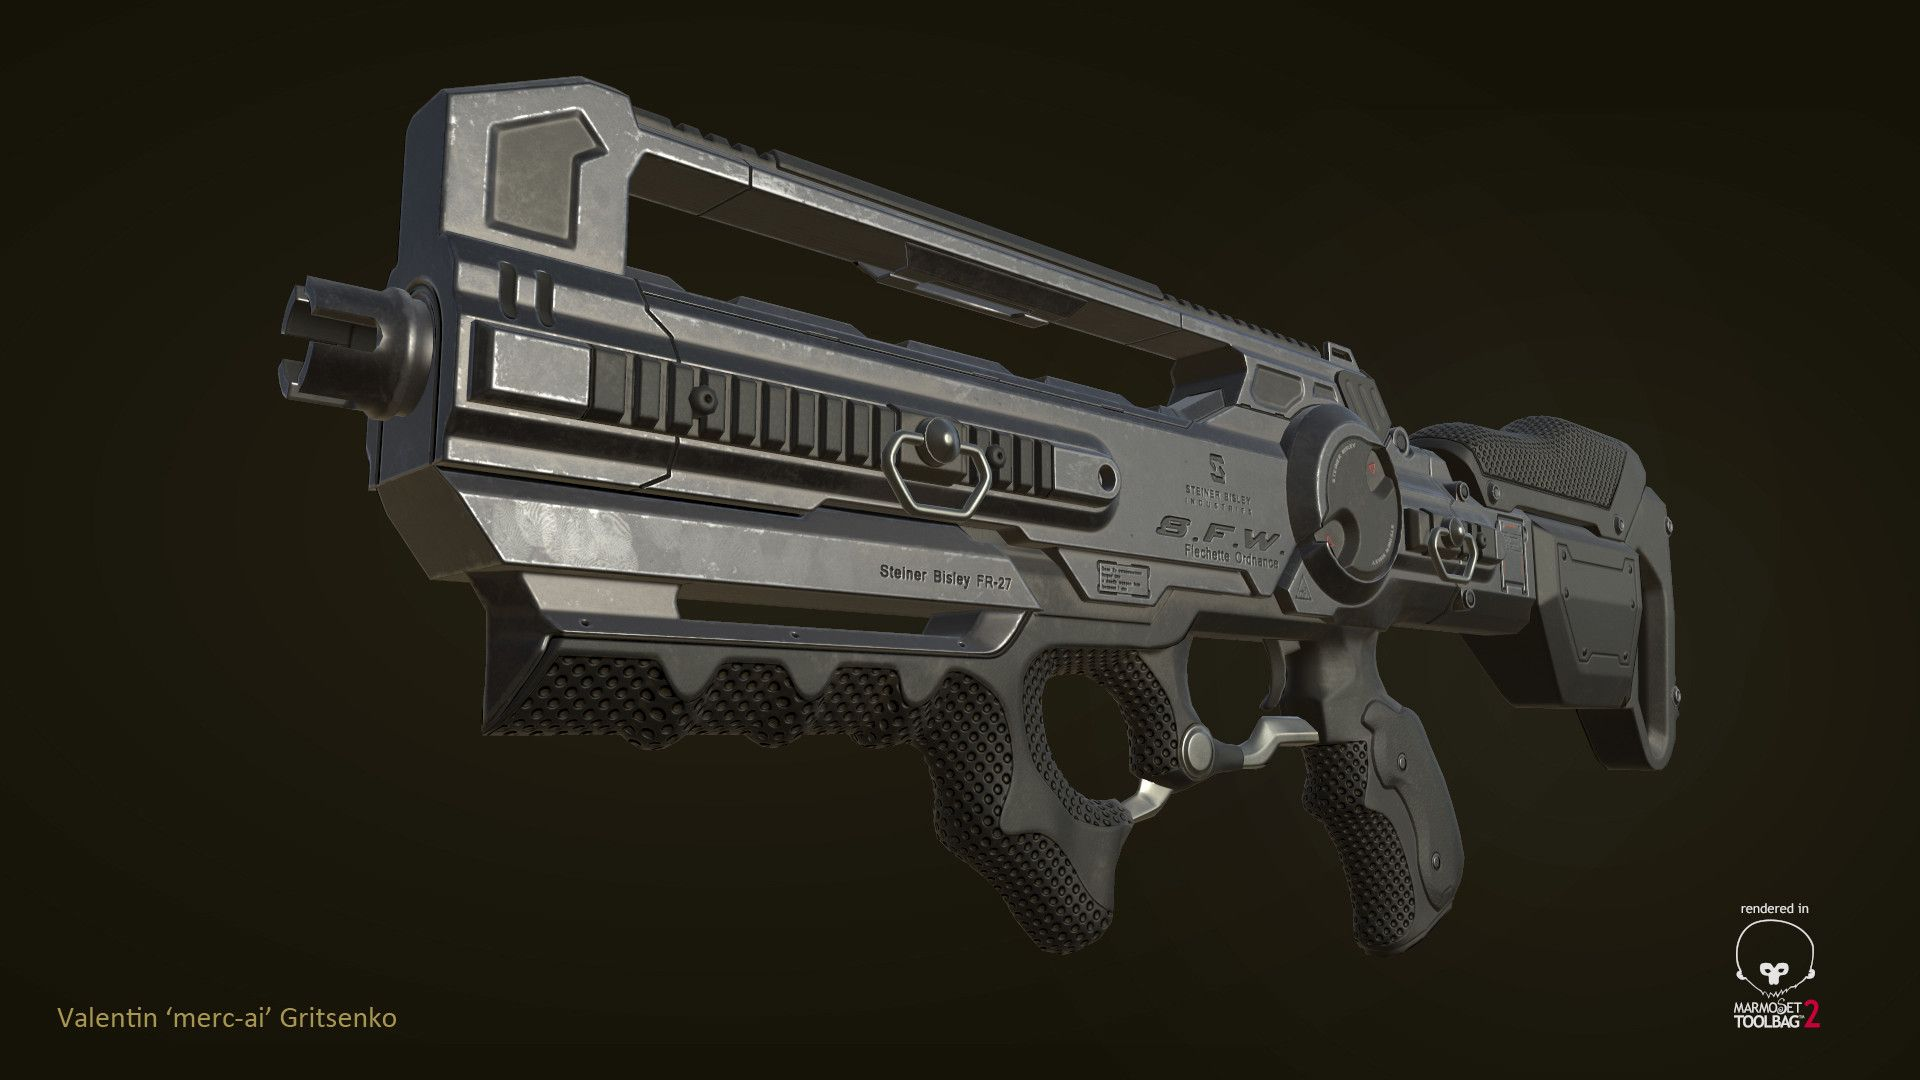 ArtStation - FR-27 Sanction rifle (Deus Ex: Mankind Divided fan art), Valentin Gritsenko